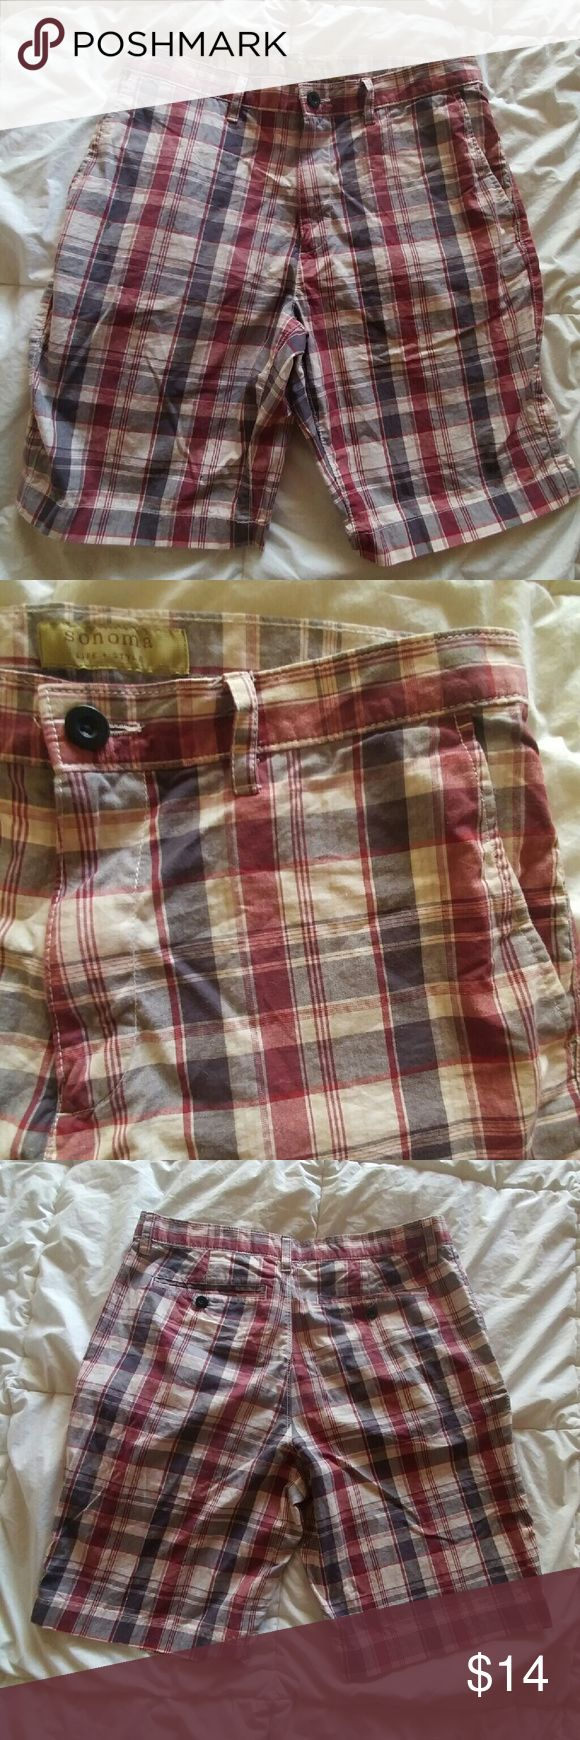 NWOT Men's Plaid Shorts Plaid shorts by Sonoma Similar size and style to J. Crew  Perfect condition  Polo also available J. Crew Shorts